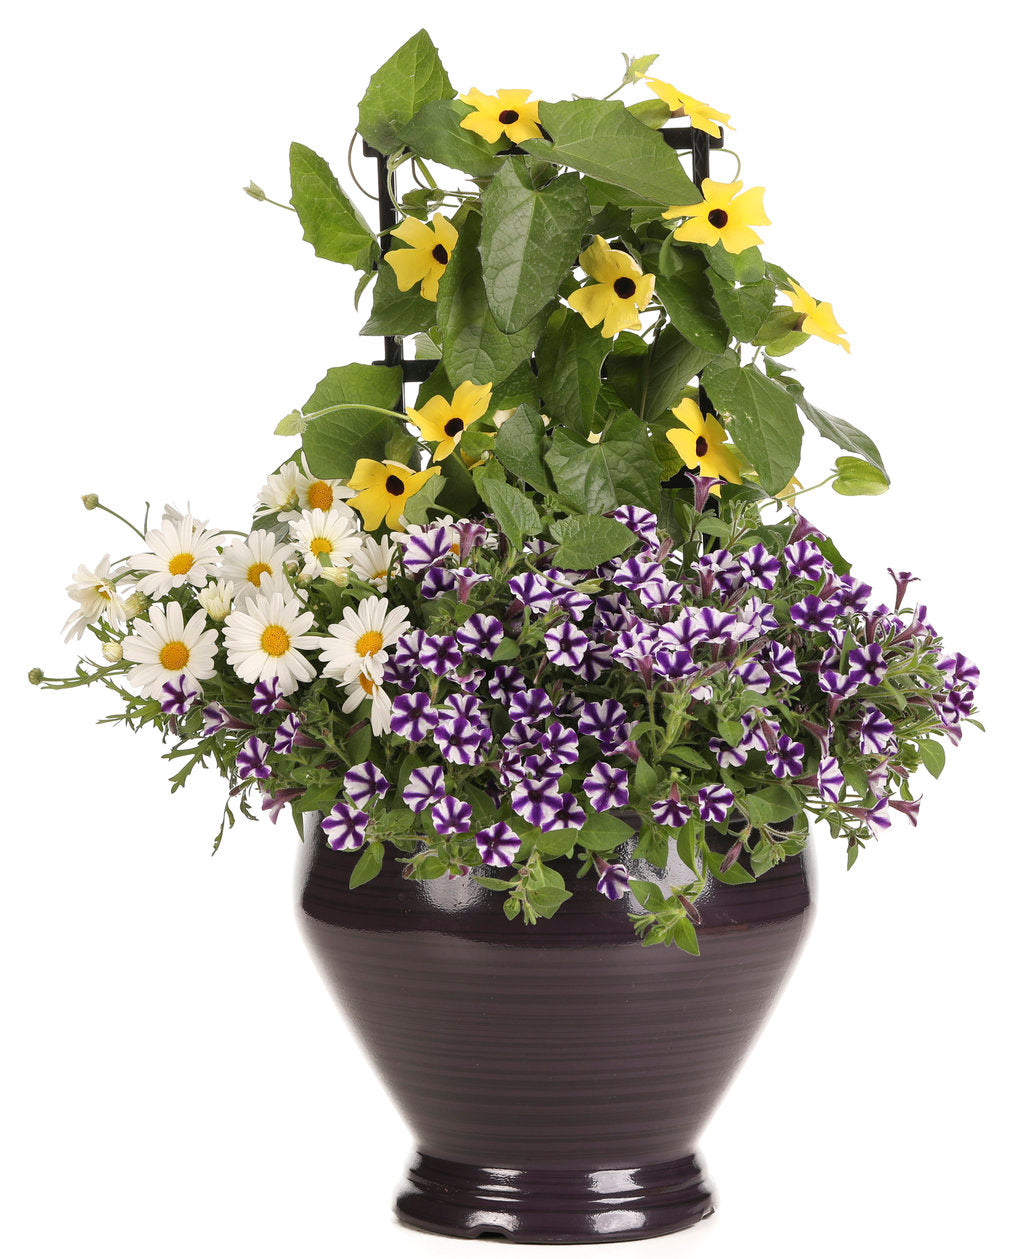 Supertunia Mini Vista® Violet Star | Proven Winners